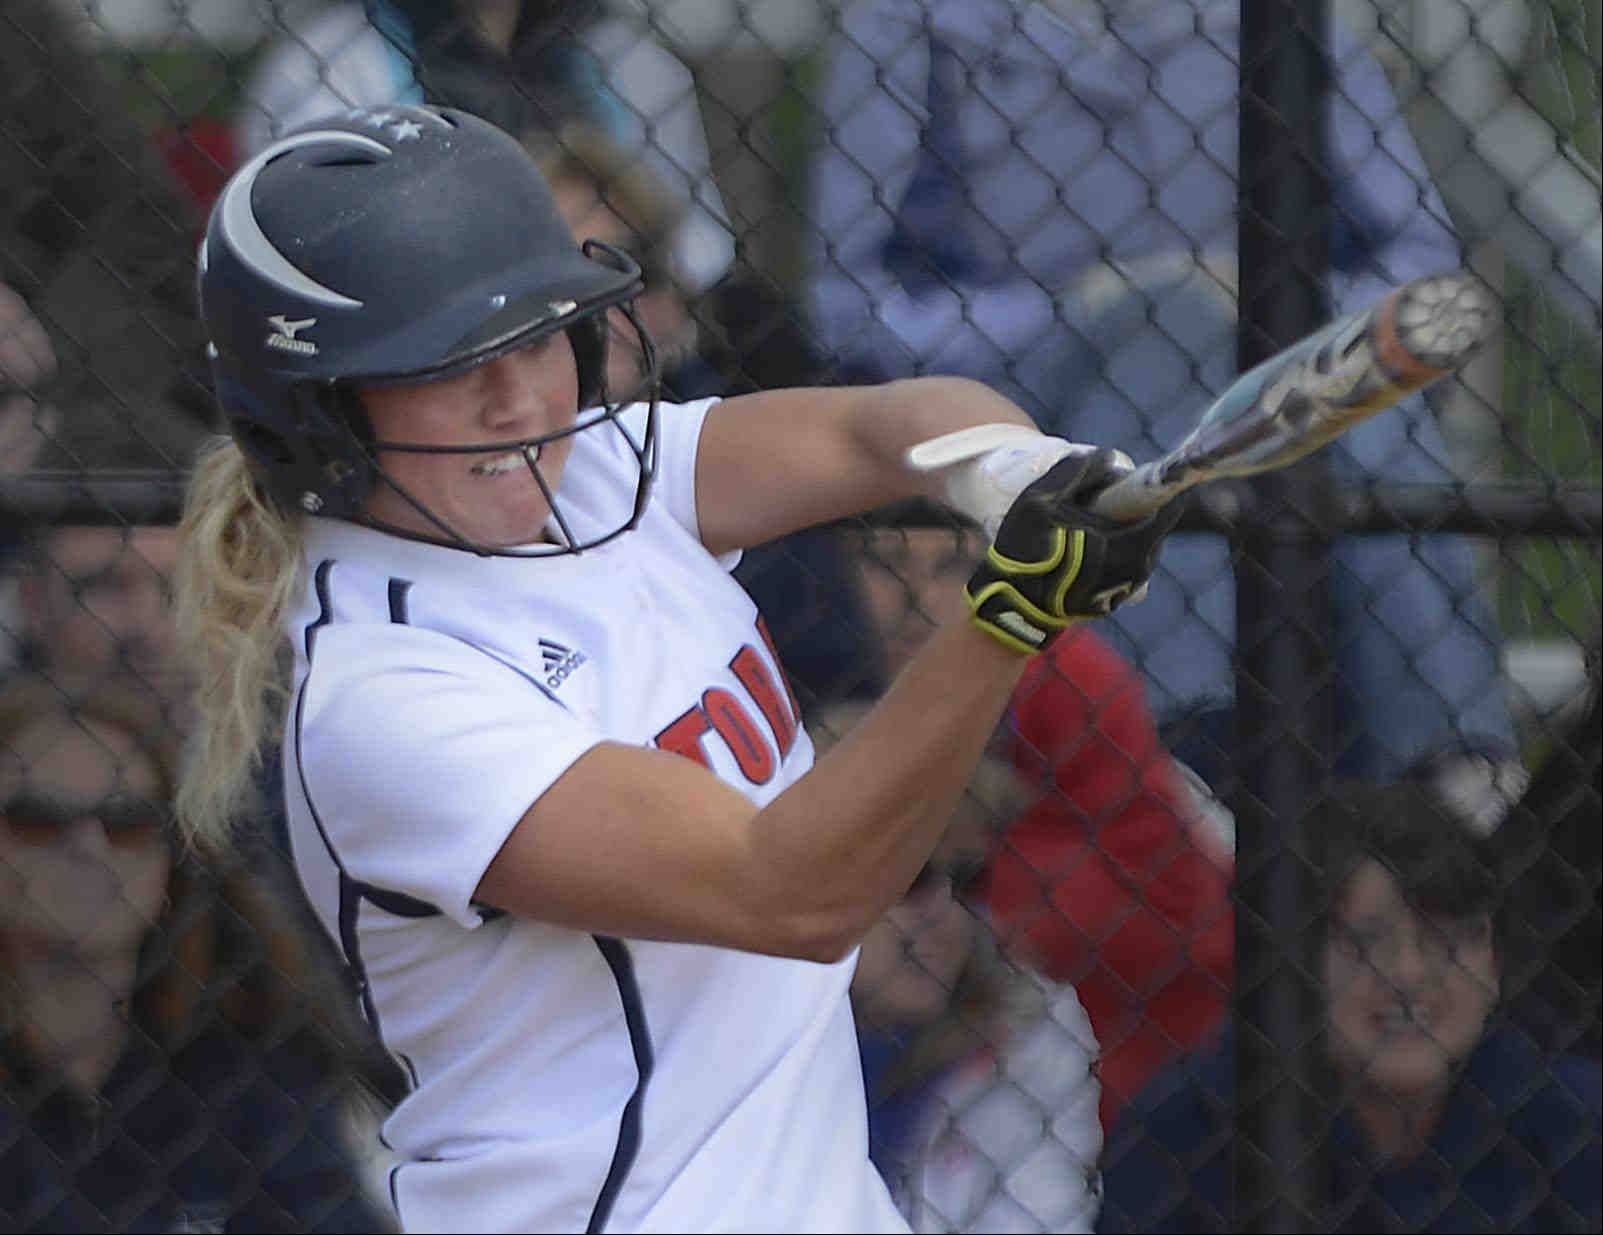 South Elgin senior Kara Rodriguez won the regional semifinal game against Elgin with an RBI single in the bottom of the eighth inning at St. Charles North Thursday.